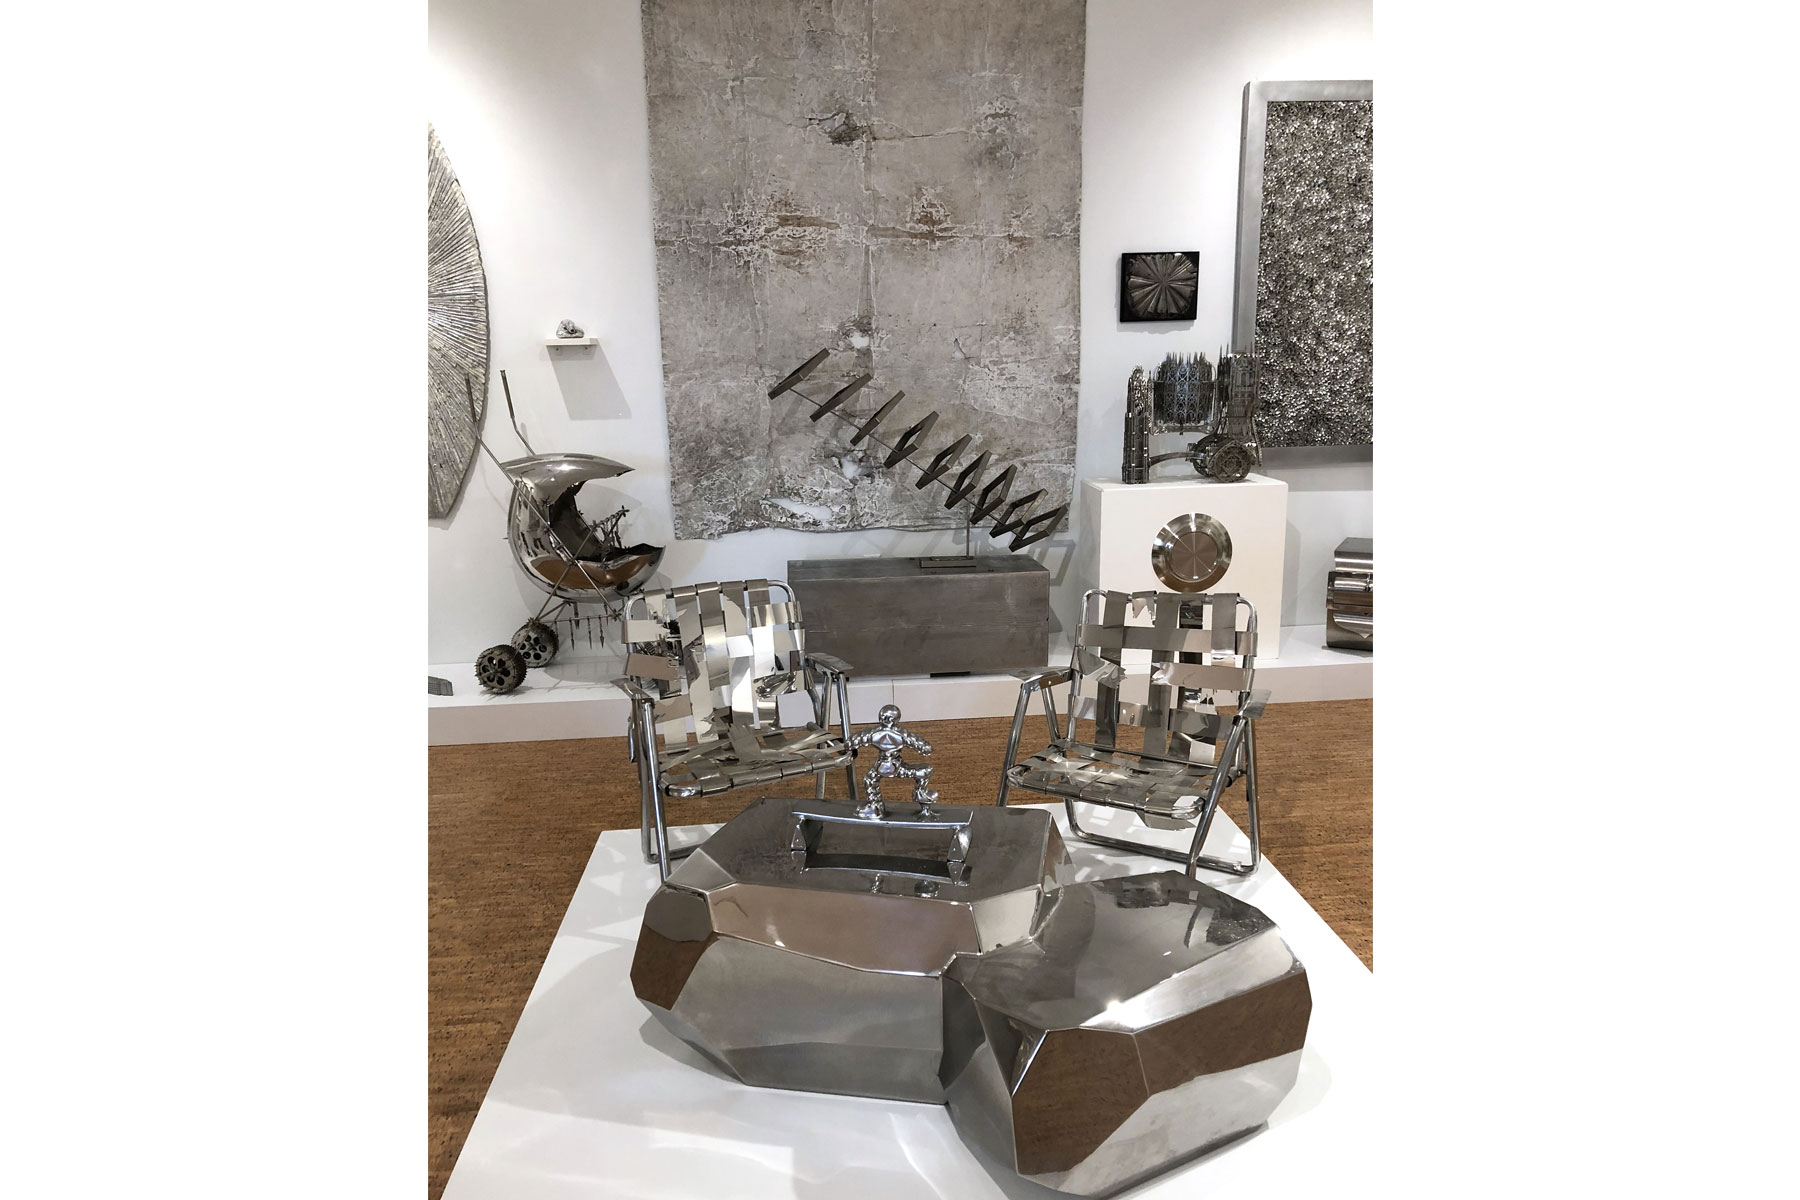 Silver-themed artwork installation, The Bunker Artspace, Palm Beach, Florida